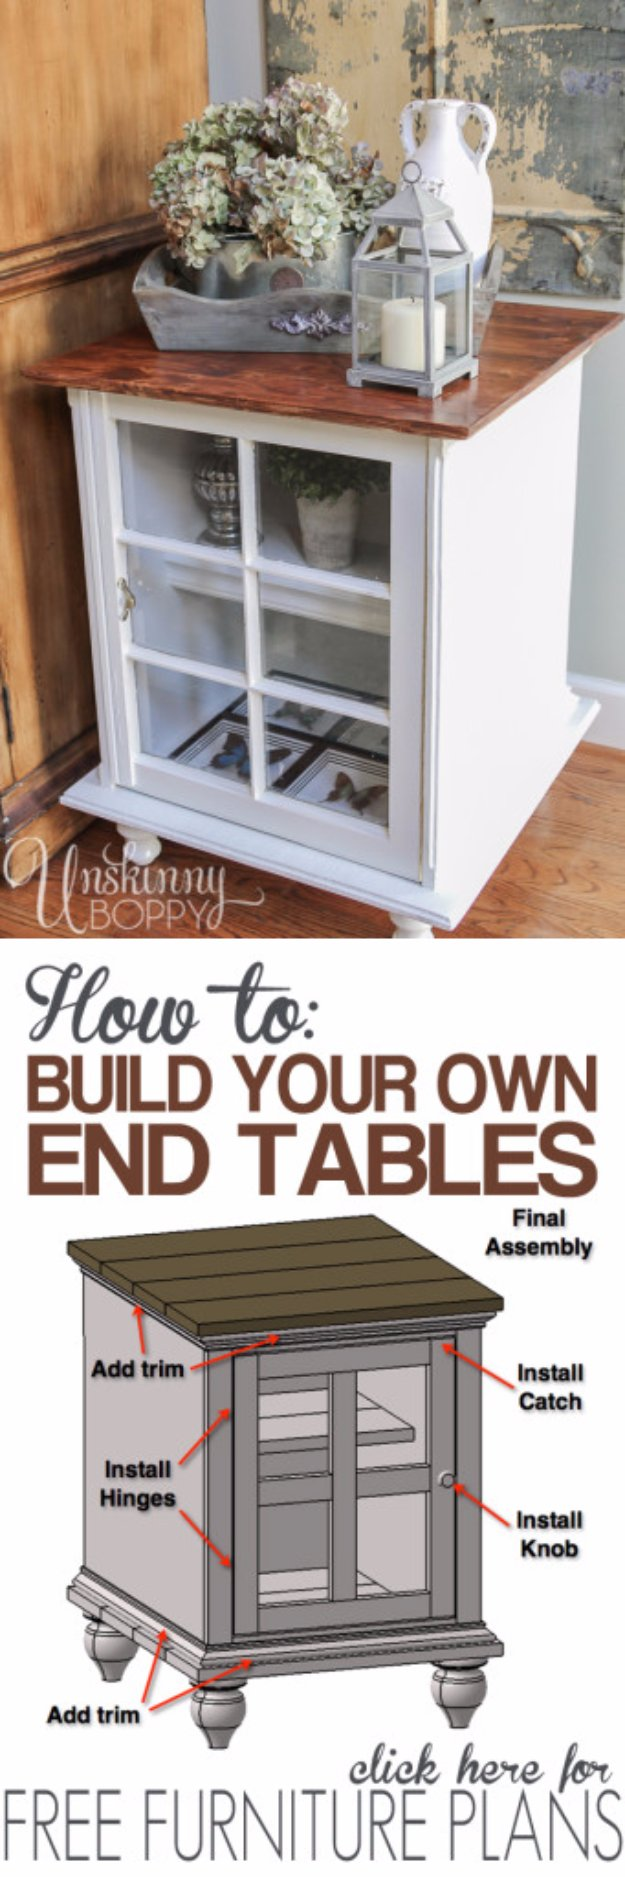 DIY End Tables with Step by Step Tutorials - Homemade End Table From Old Windows - Cheap and Easy End Table Projects and Plans - Wood, Storage, Pallet, Crate, Modern and Rustic. Bedroom and Living Room Decor Ideas #endtables #diydecor #diy